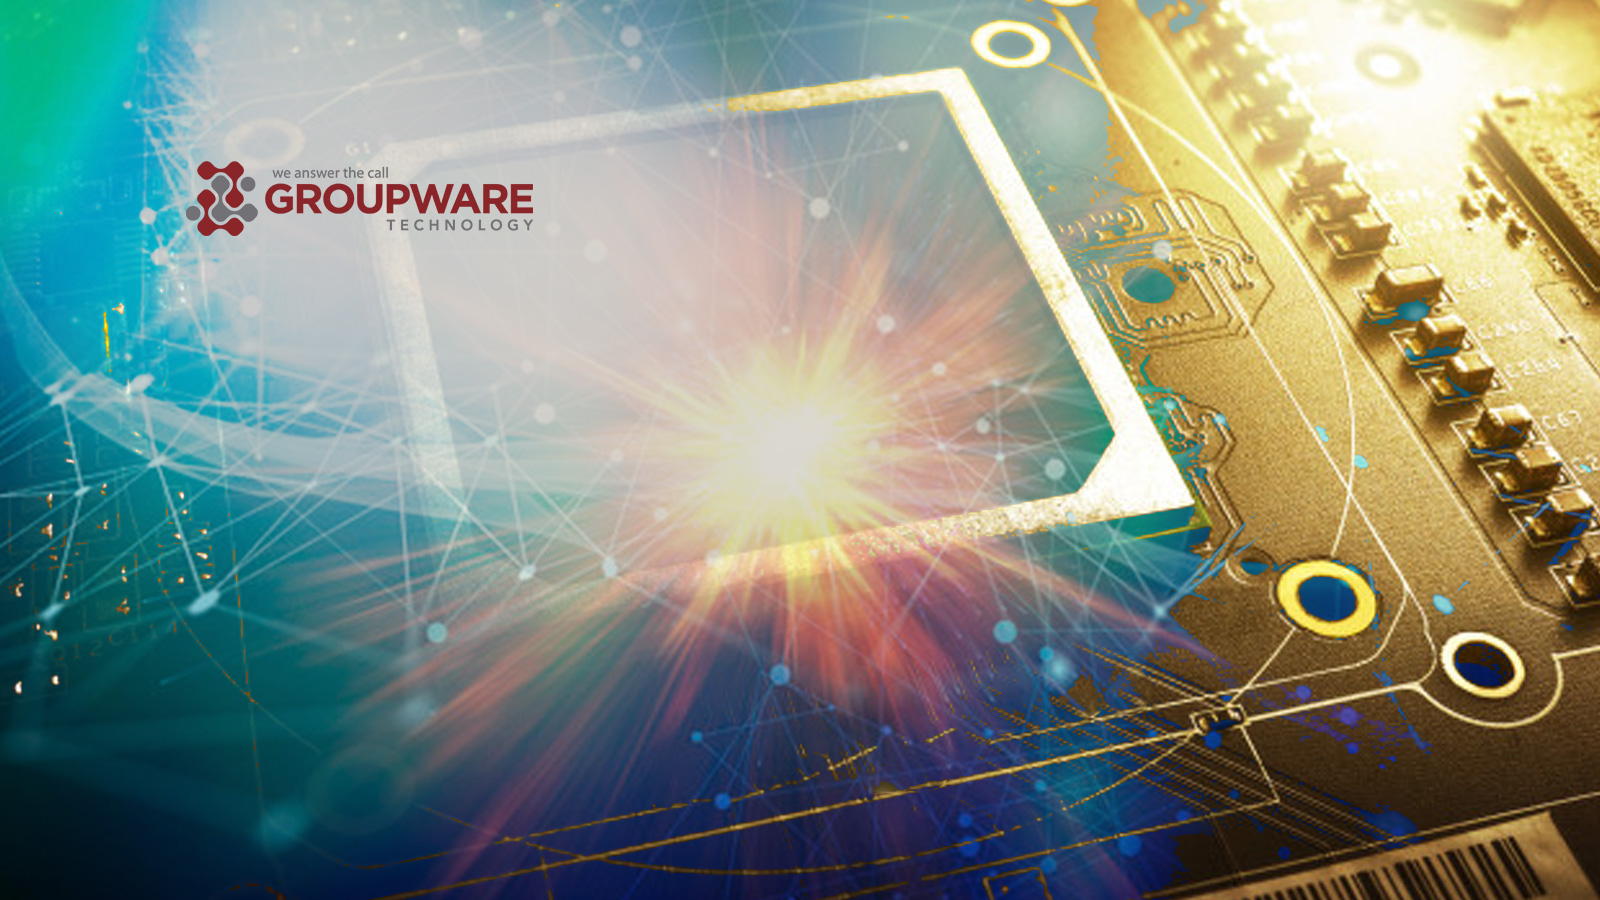 Groupware Technology to Exhibit at 2019 NVIDIA GPU Technology Conference